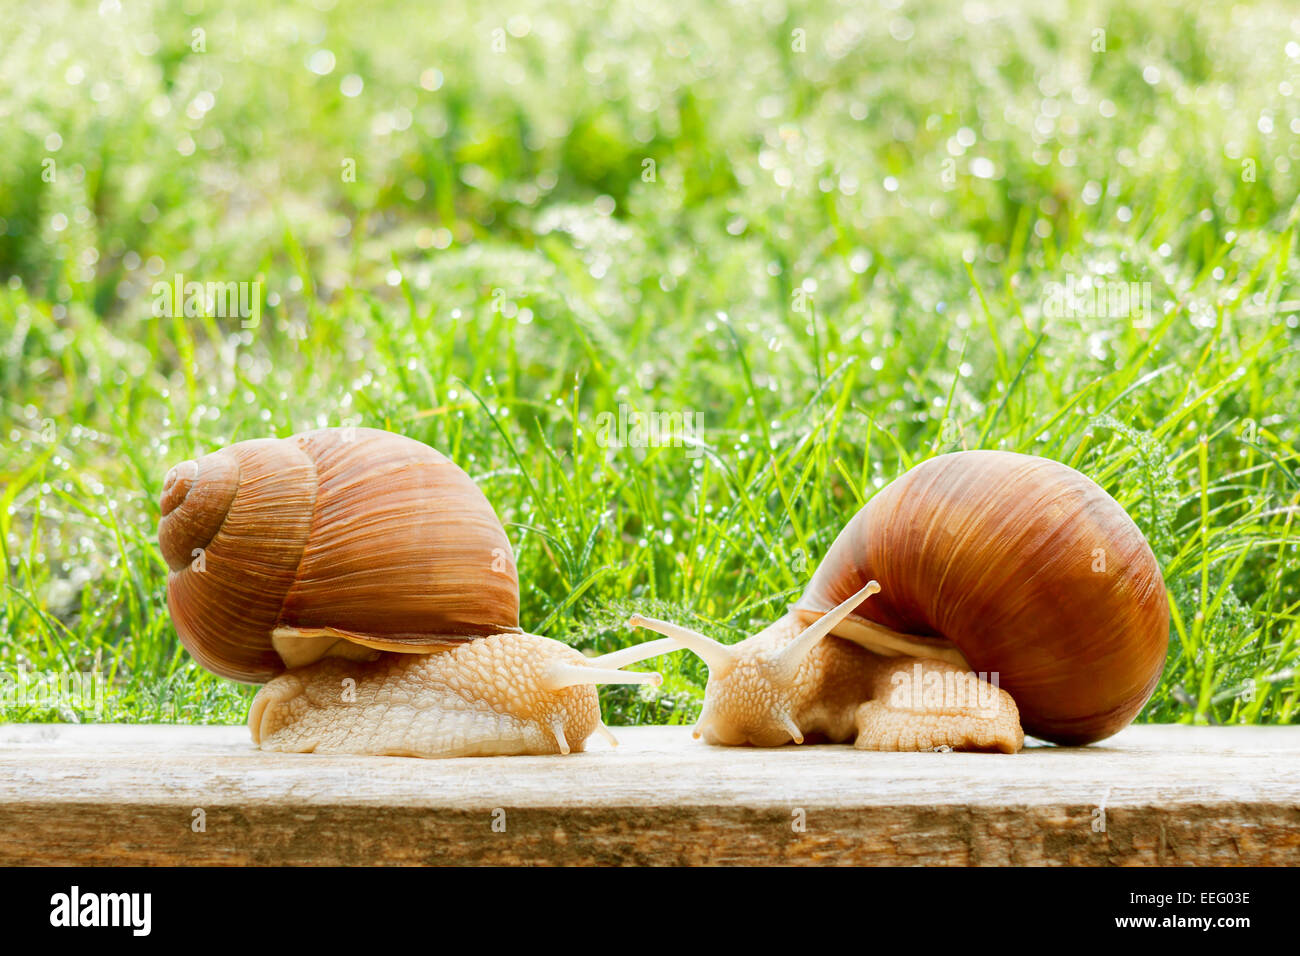 snails stockfotos snails bilder alamy. Black Bedroom Furniture Sets. Home Design Ideas